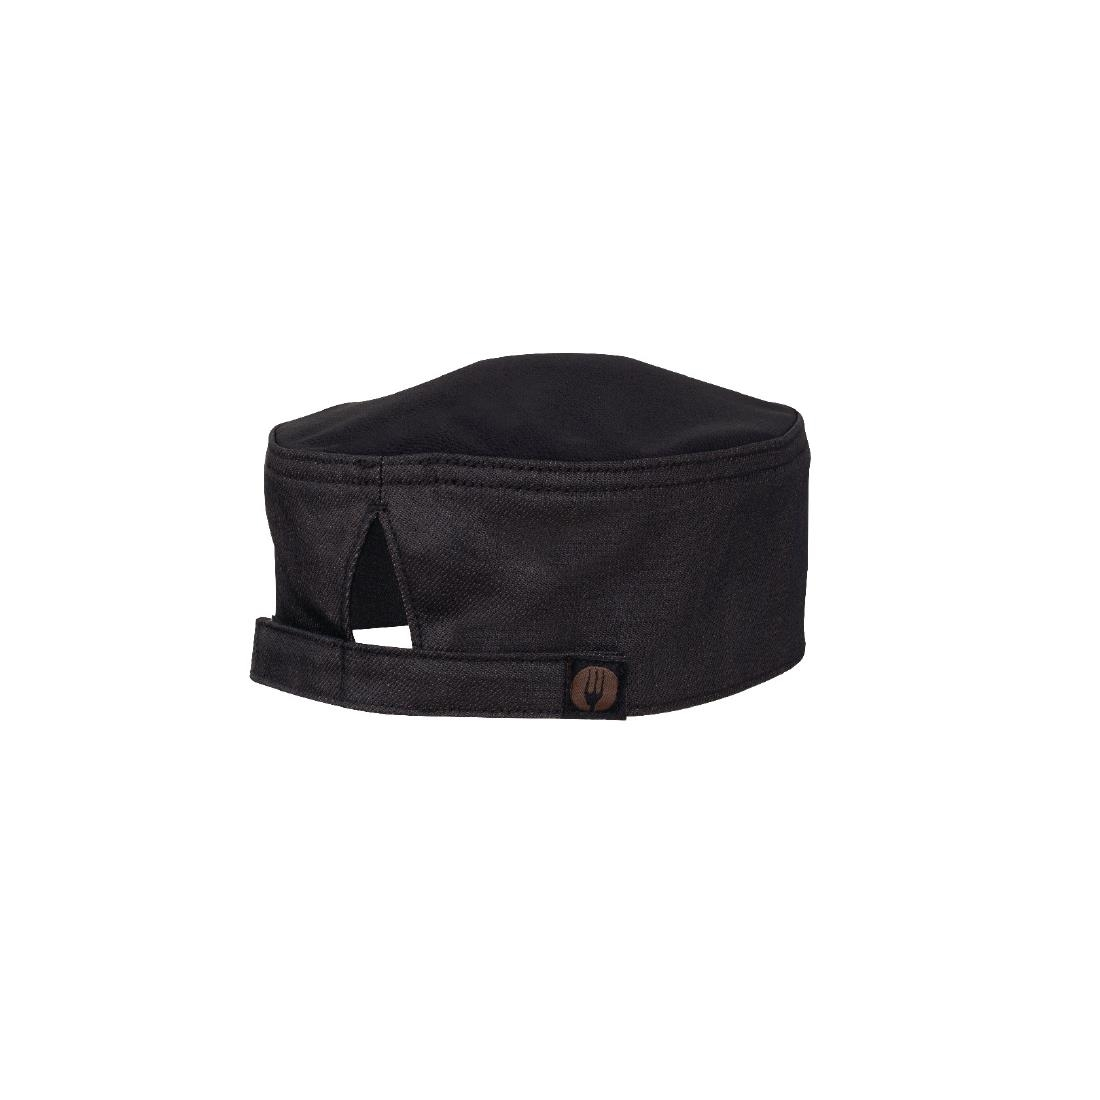 Image of Chef Works Urban Cool Vent Boulder Wet Look Beanie Black Brown